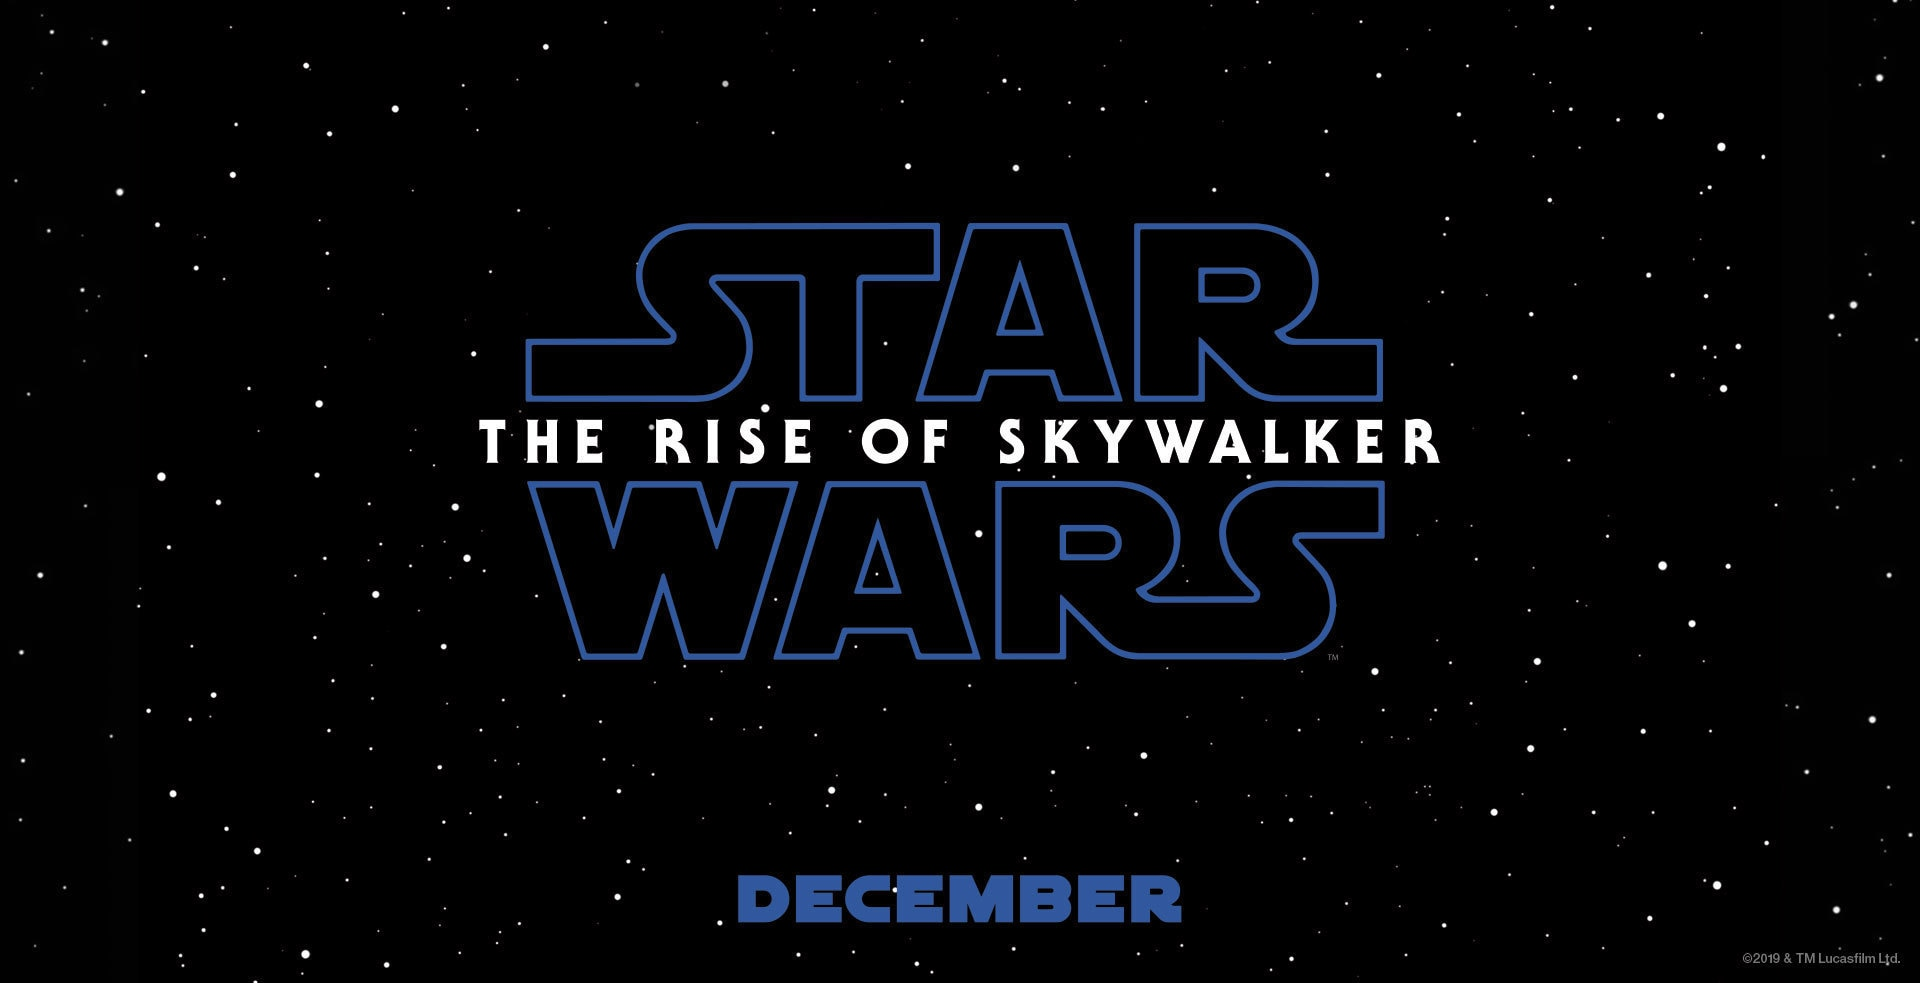 Star Wars Episode IX: The Rise of Luke Skywalker - Banner Hero Object